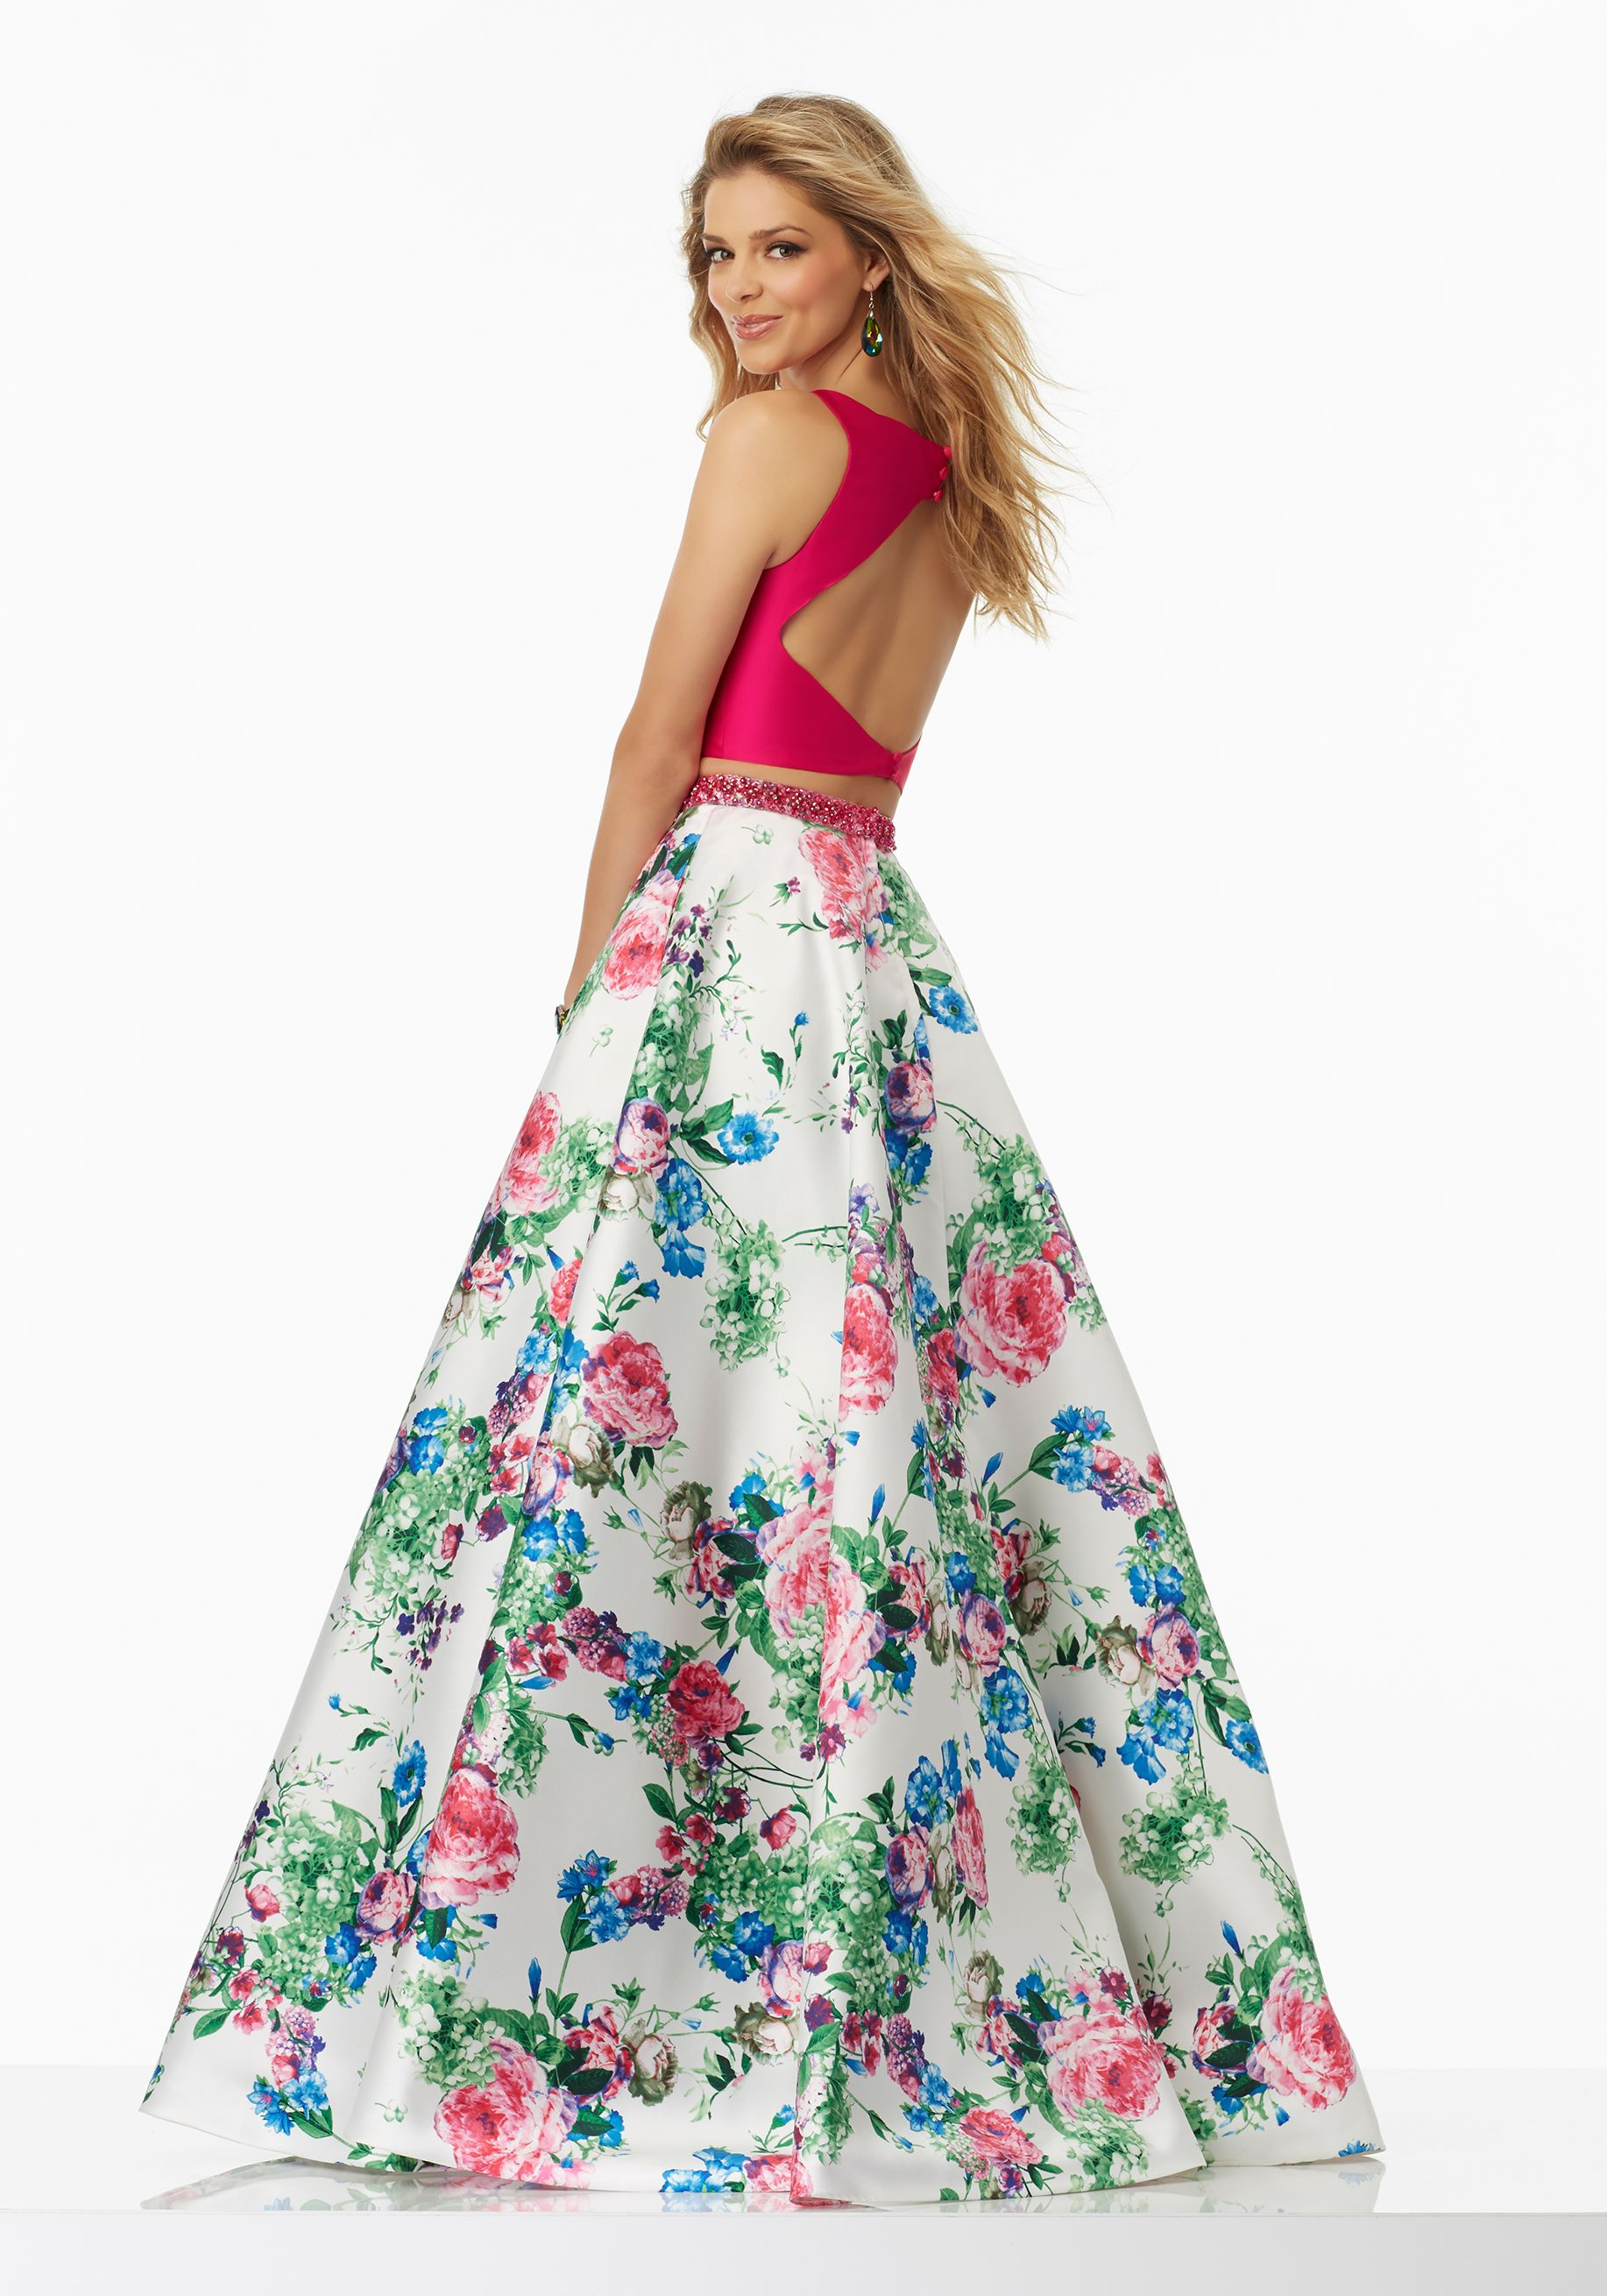 6b2e6499a Prom Dresses by Morilee designed by Madeline Gardner. Stunning two-piece  Floral Printed Larissa Satin Prom Dress